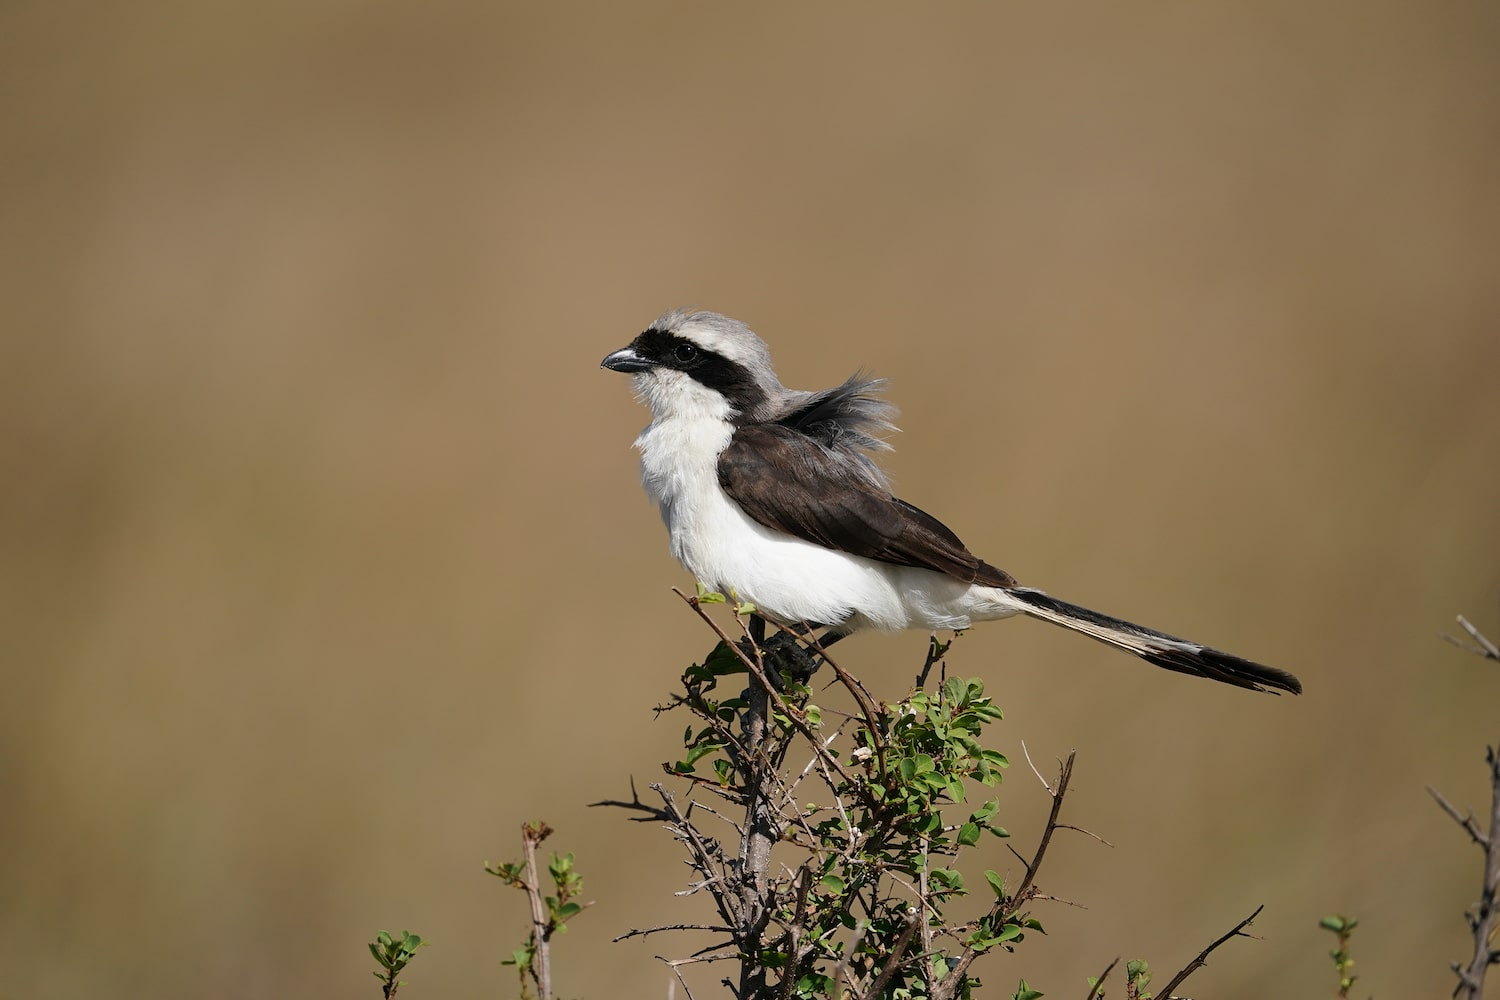 tiny-black-and-white-bird-on-plant-alpha-7III